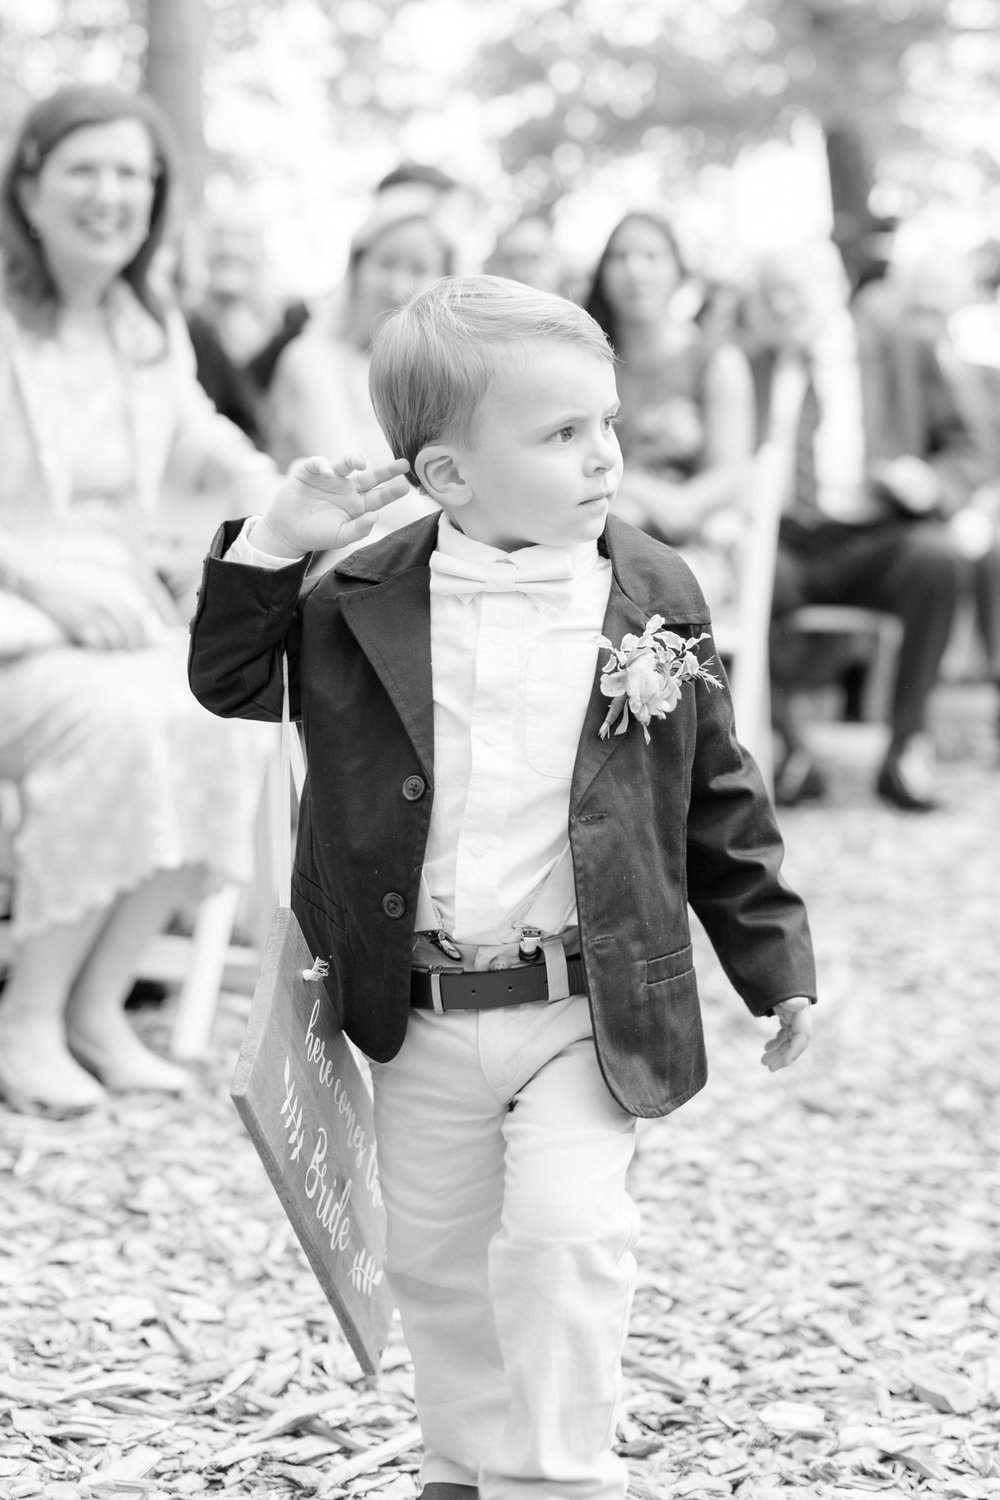 He didn't quite hold the sign right, but he still looked adorable walking down the aisle!